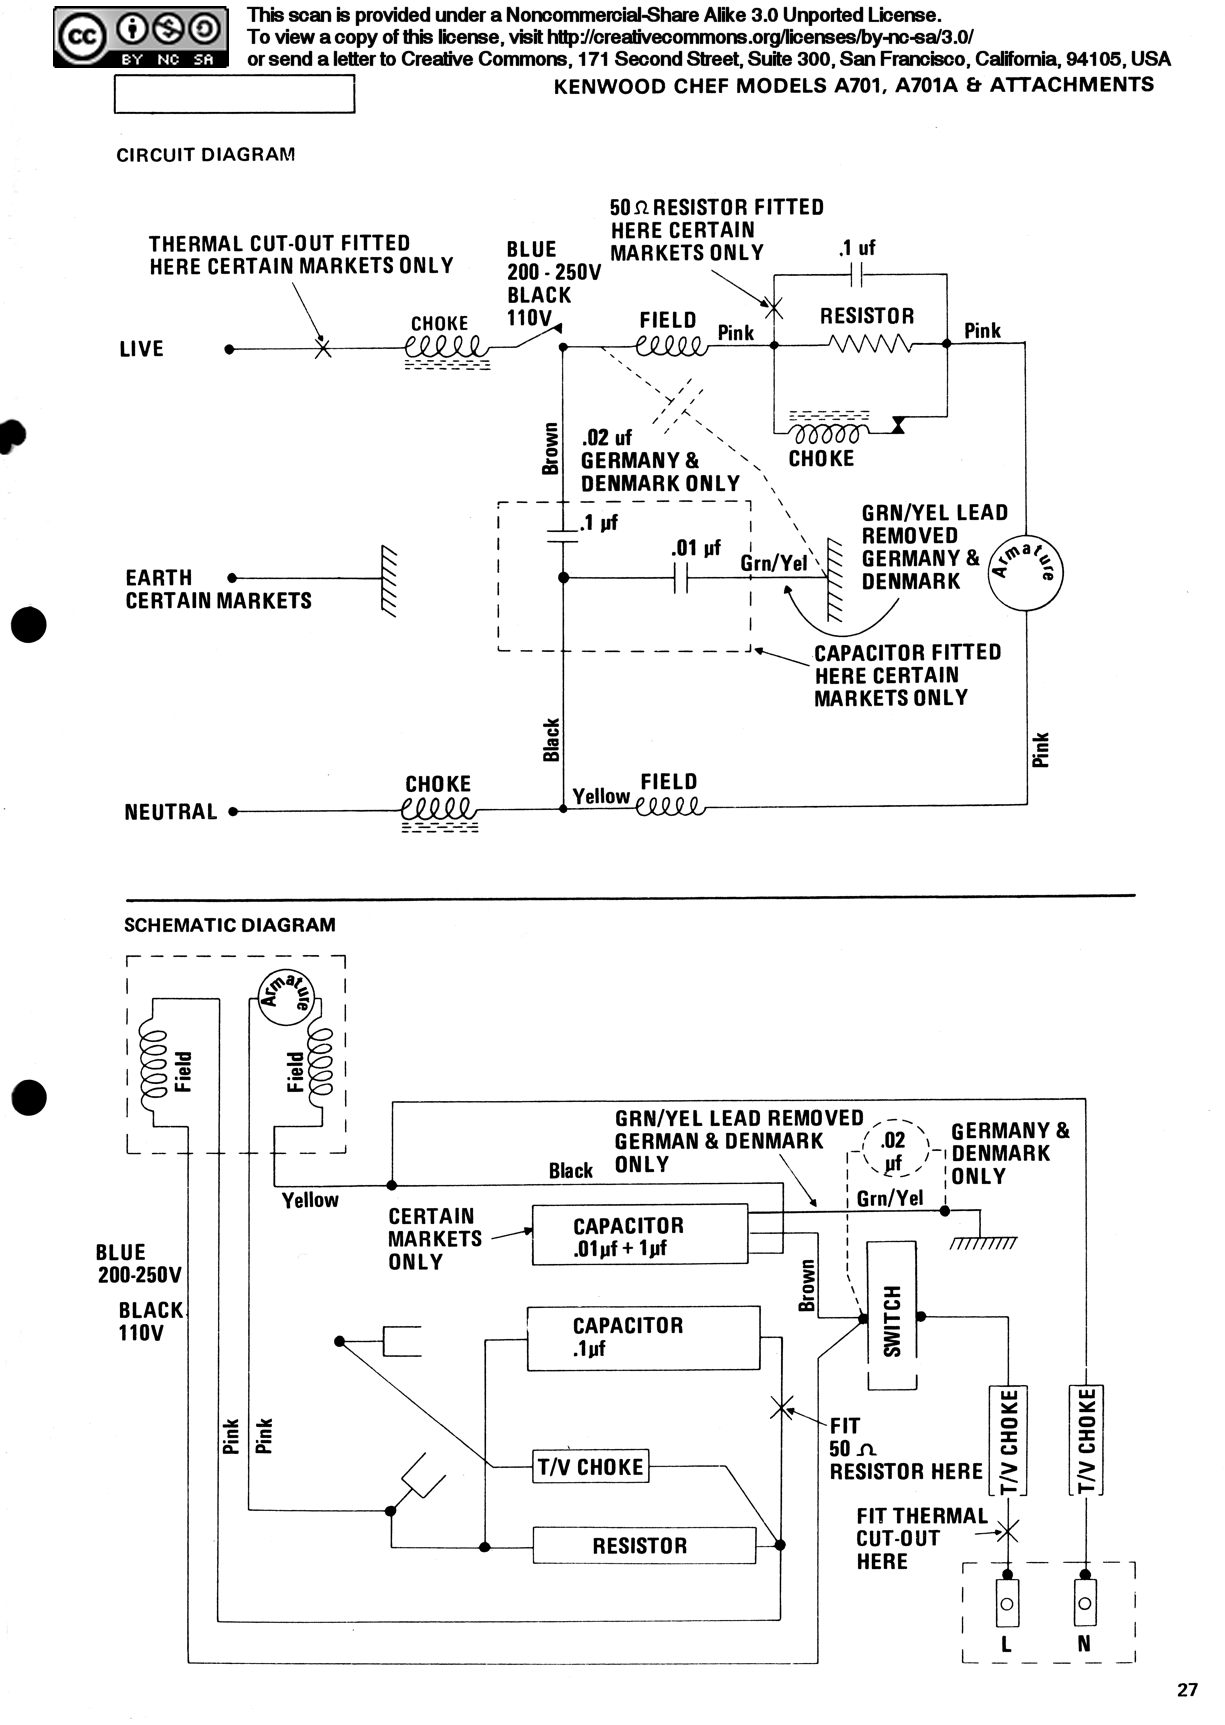 How To Repair A Kenwood Chef Motor Chopper Capacitor Wiring Diagram 167 189 Page 27